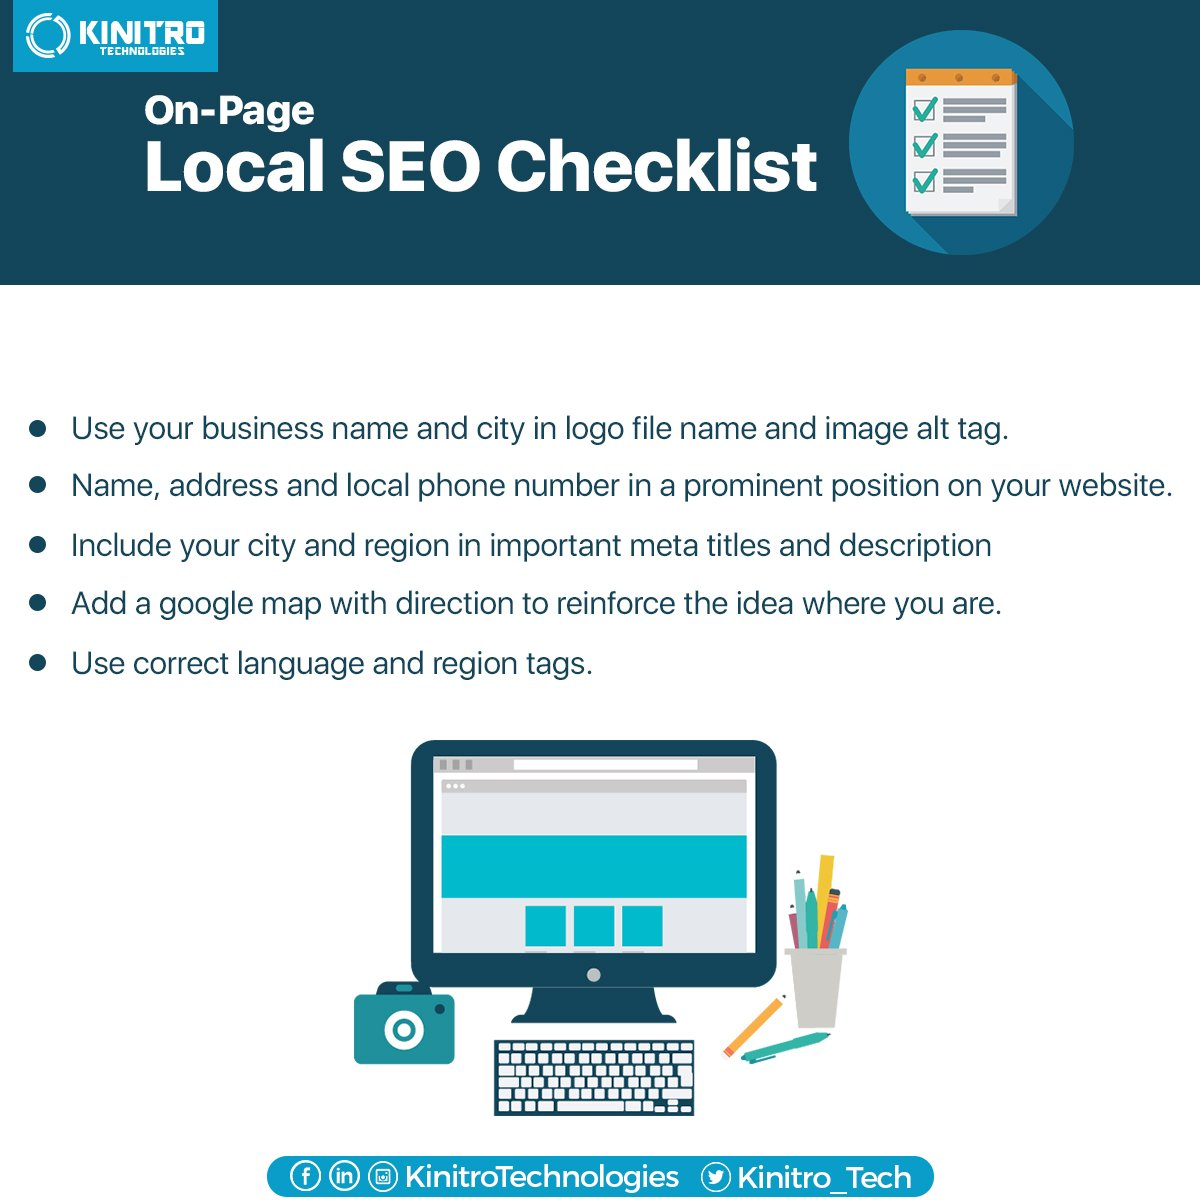 Local SEO is highly effective local online marketing. Allows businesses to promote services to local customers #SEO #DigitalMarketing https://t.co/317I77Z4pS